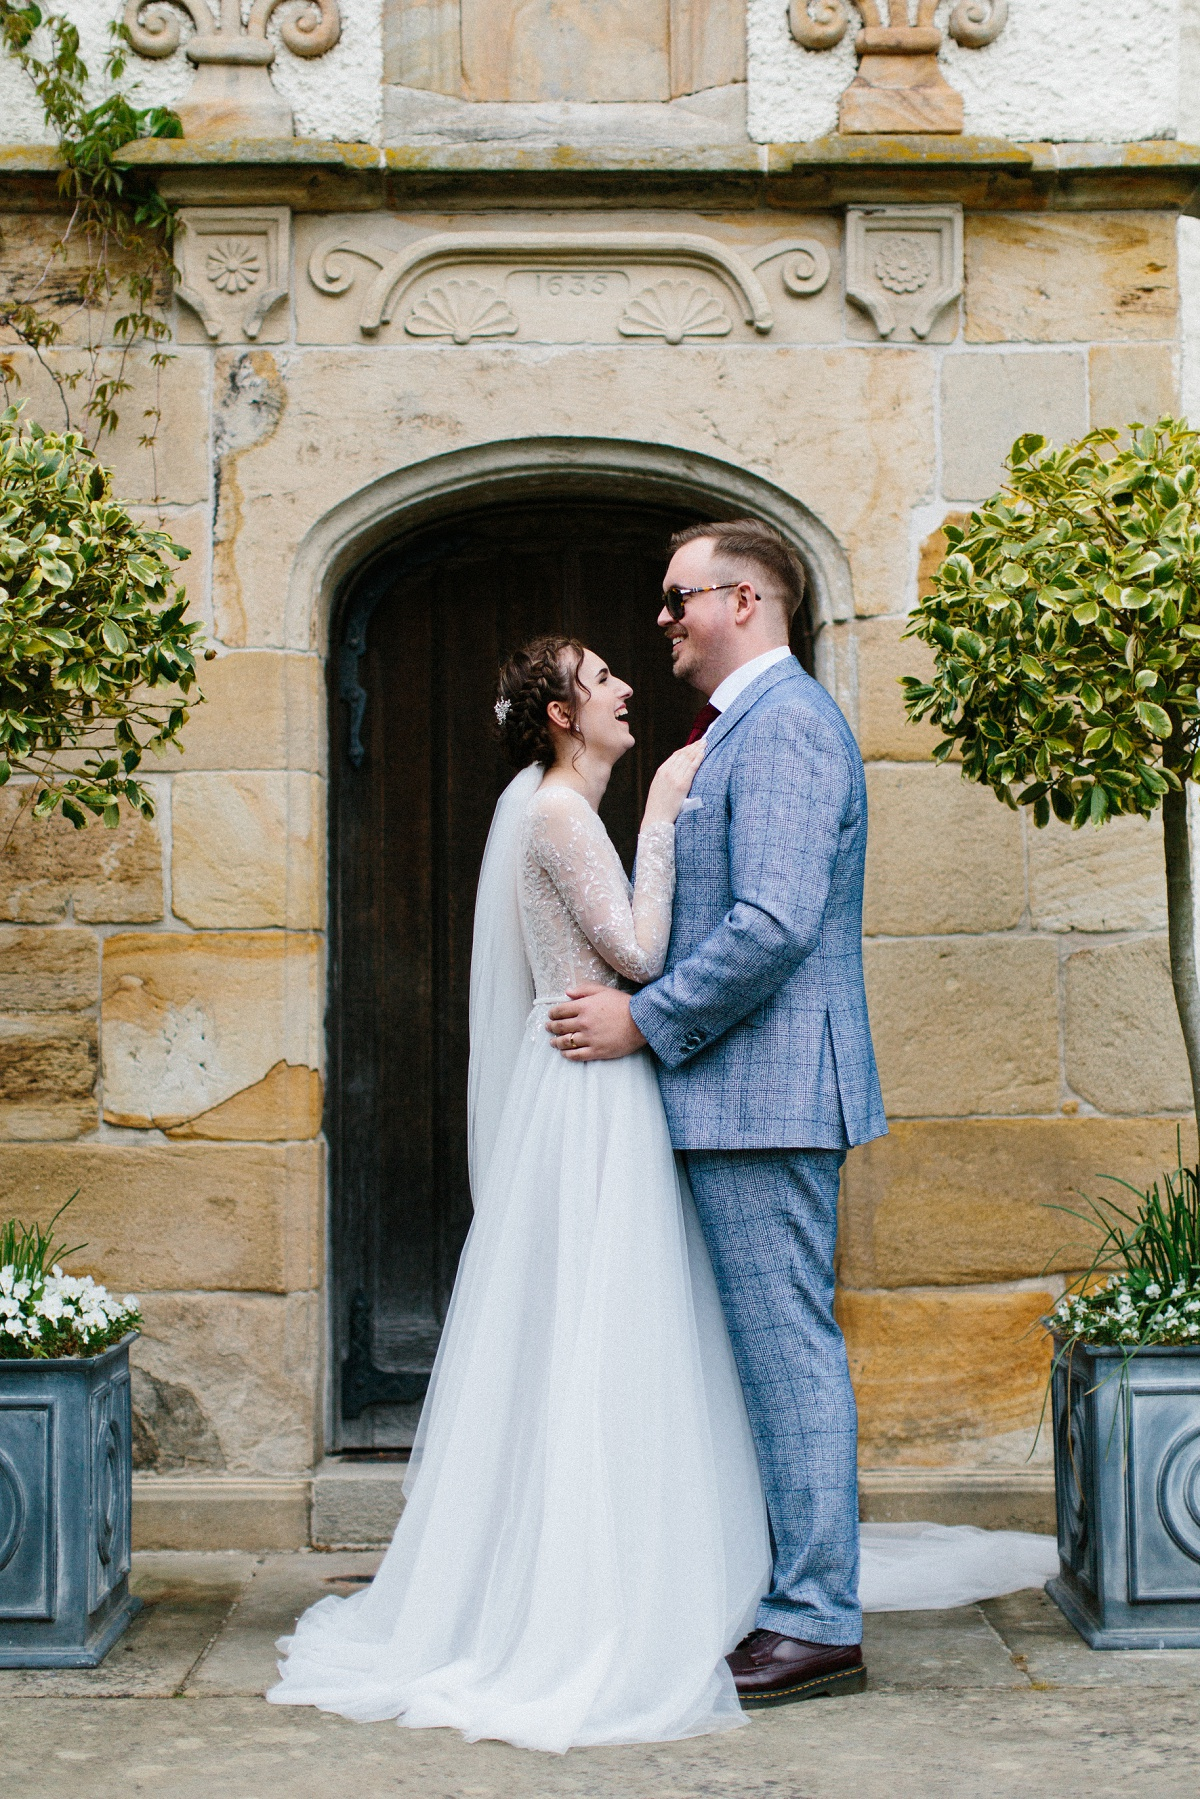 An Elegant Wedding at Lartington Hall (c) Melissa Beattie (21)